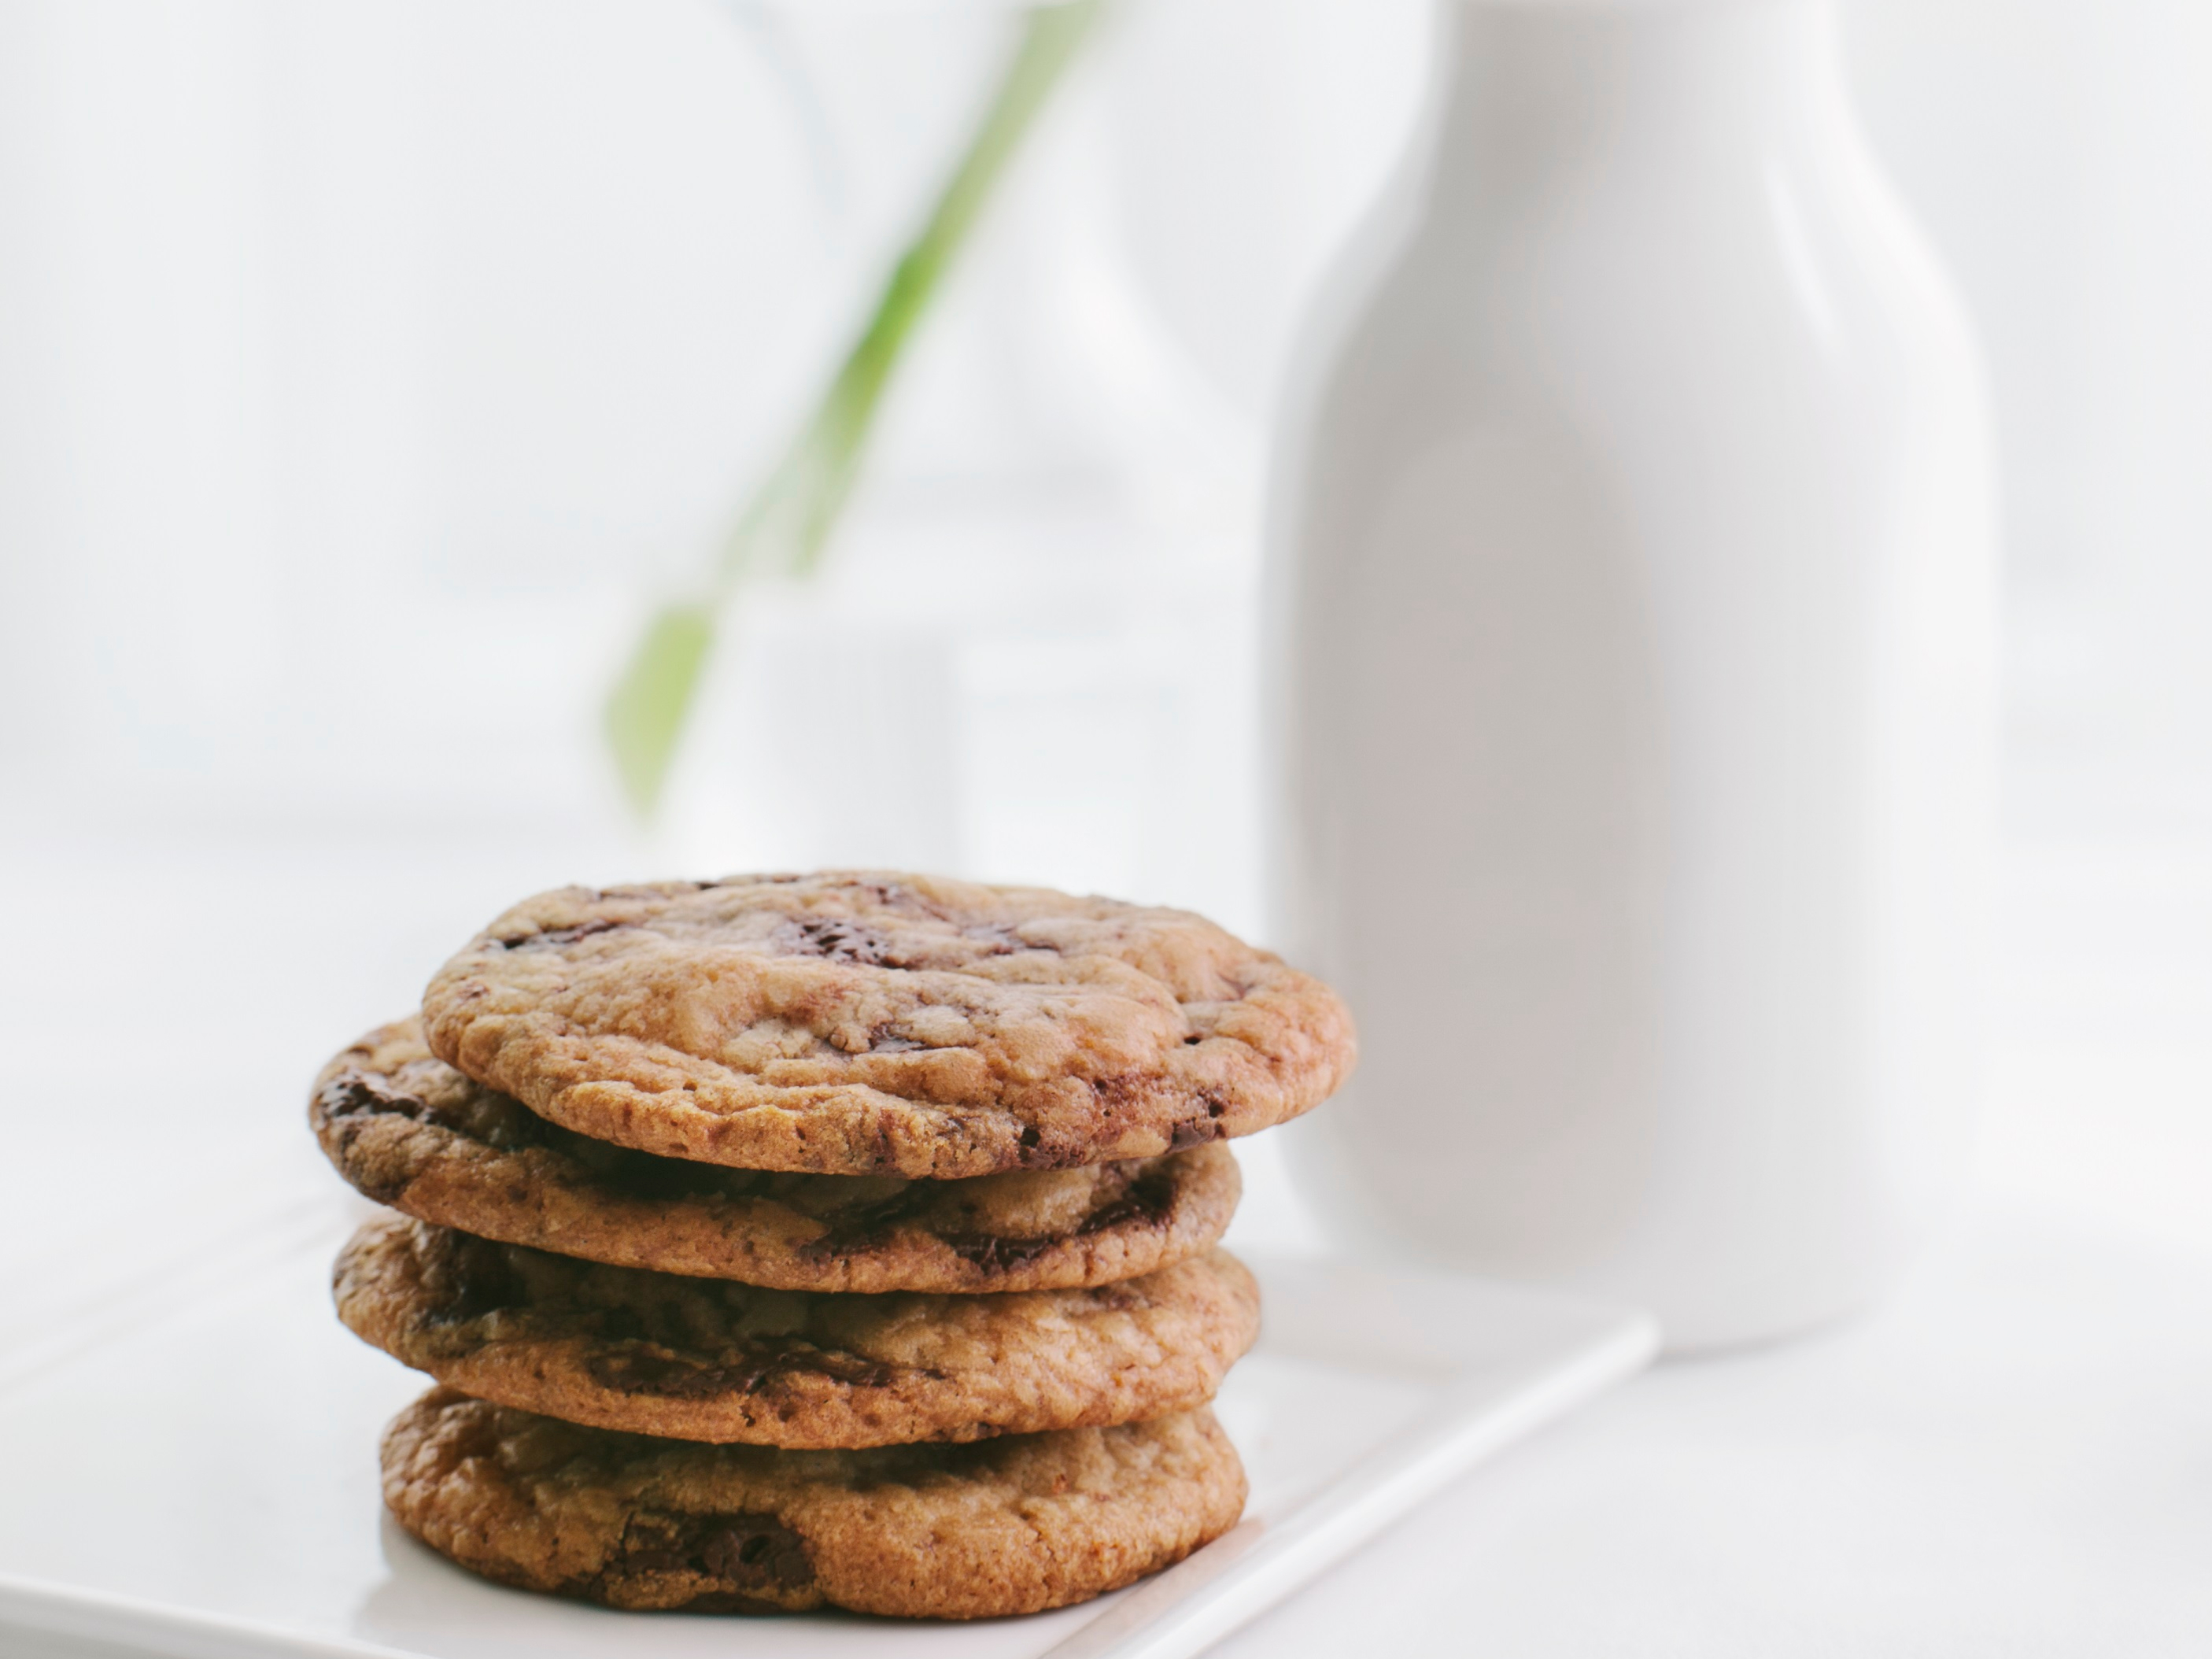 Milk, cookies, and a tulip